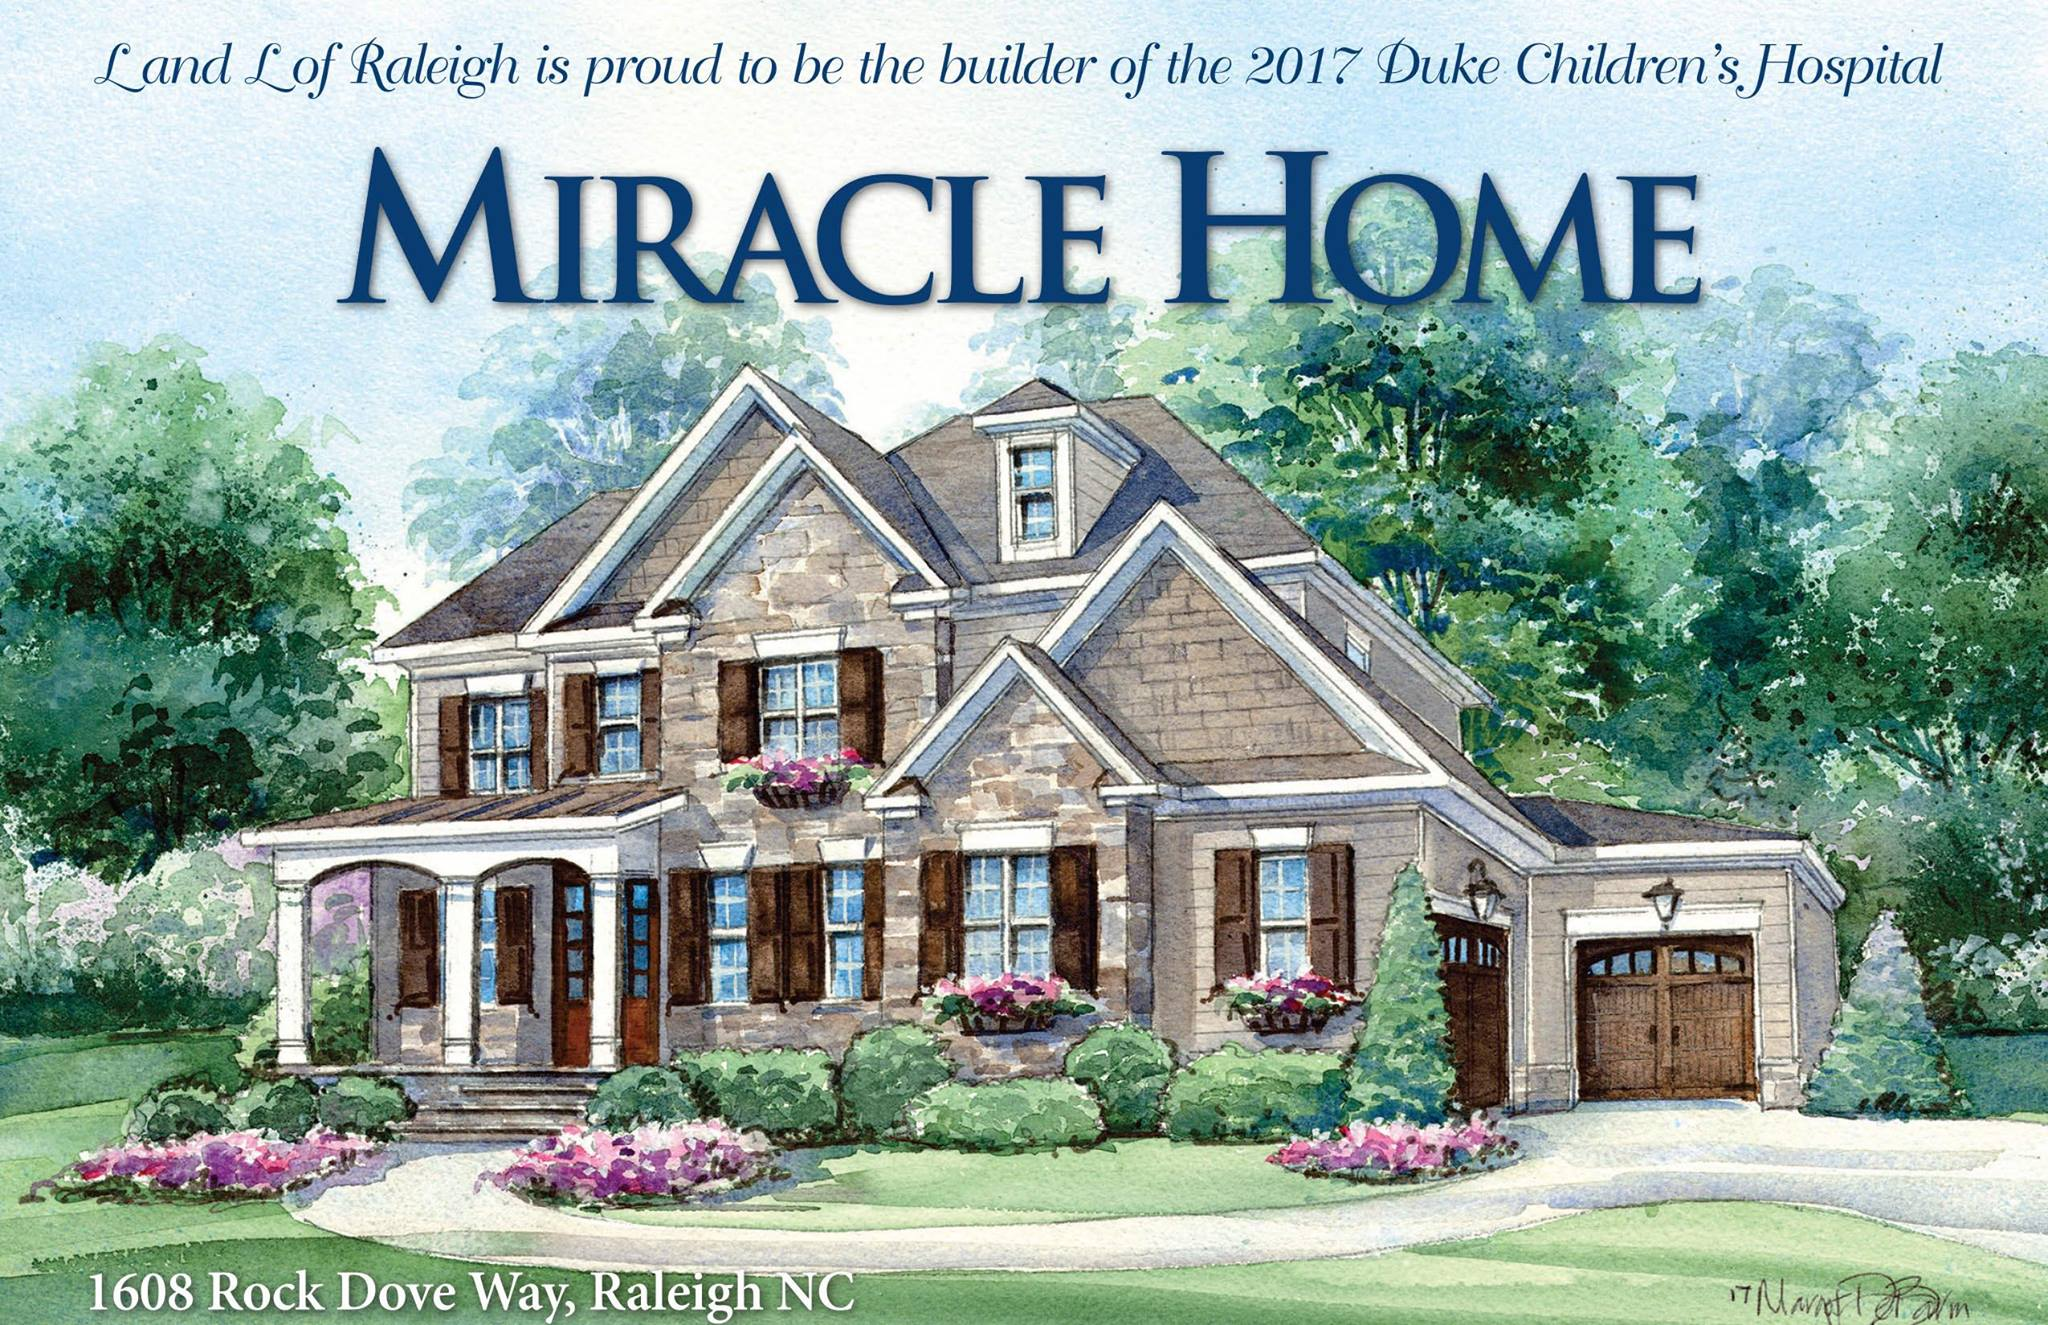 Miracle Home Illustration